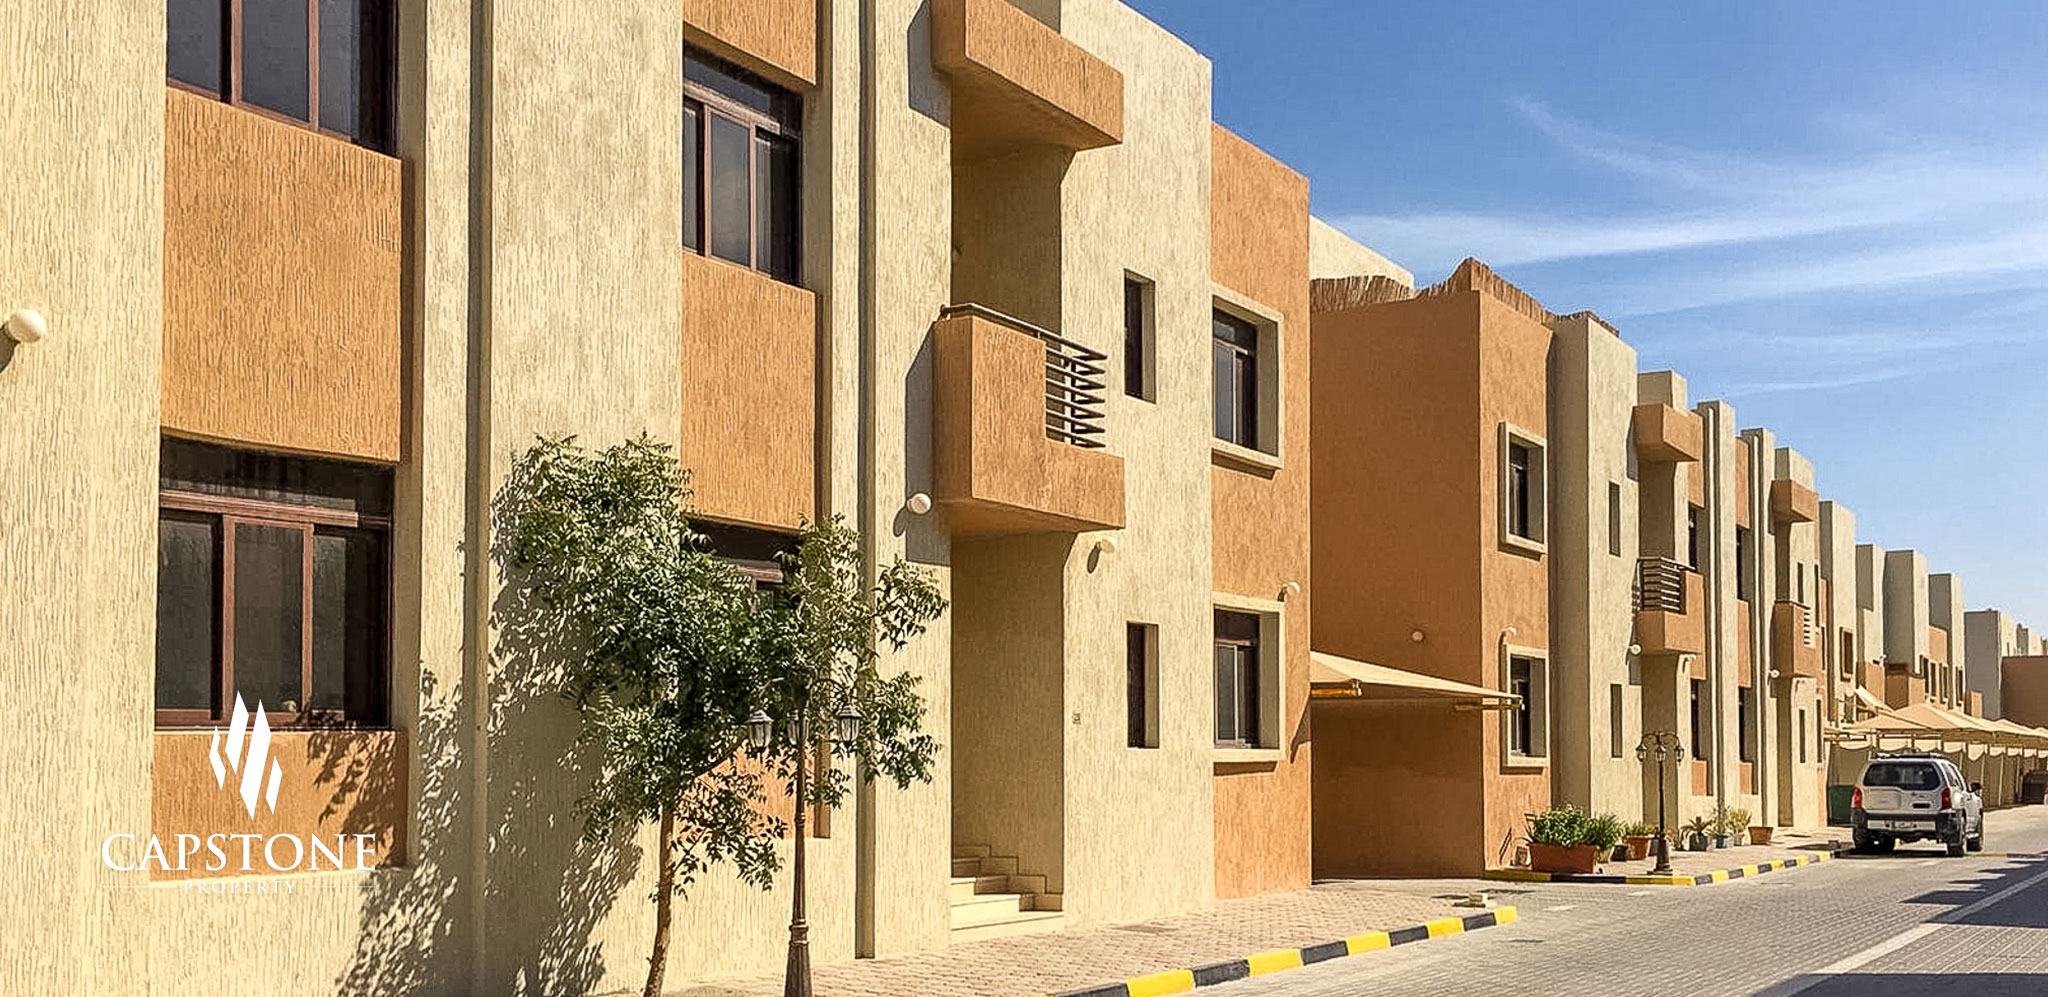 Capstone | Doha, Qatar apartments lease and rent  | Free 1 Month